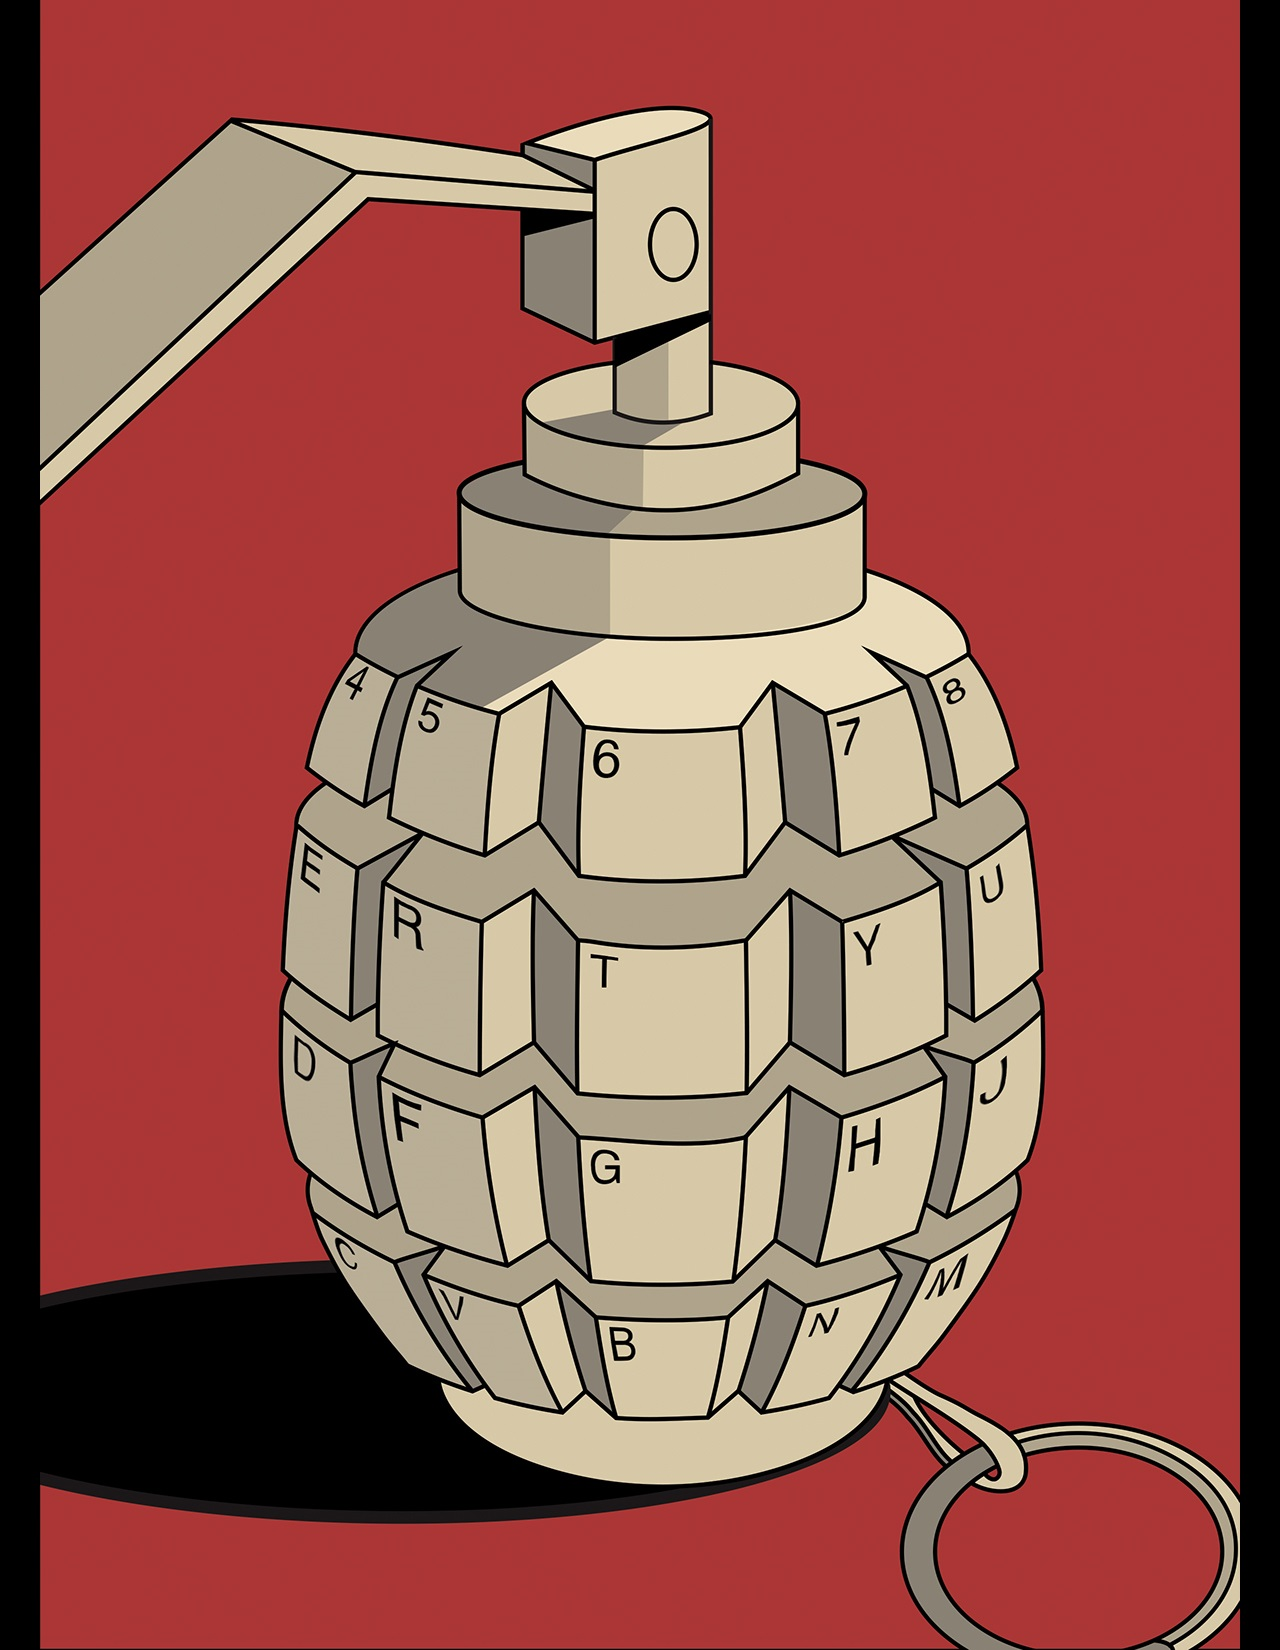 Illustration of a hand grenade designed with the letters and numbers of a QWERTY keyboard to represent cyber warfare